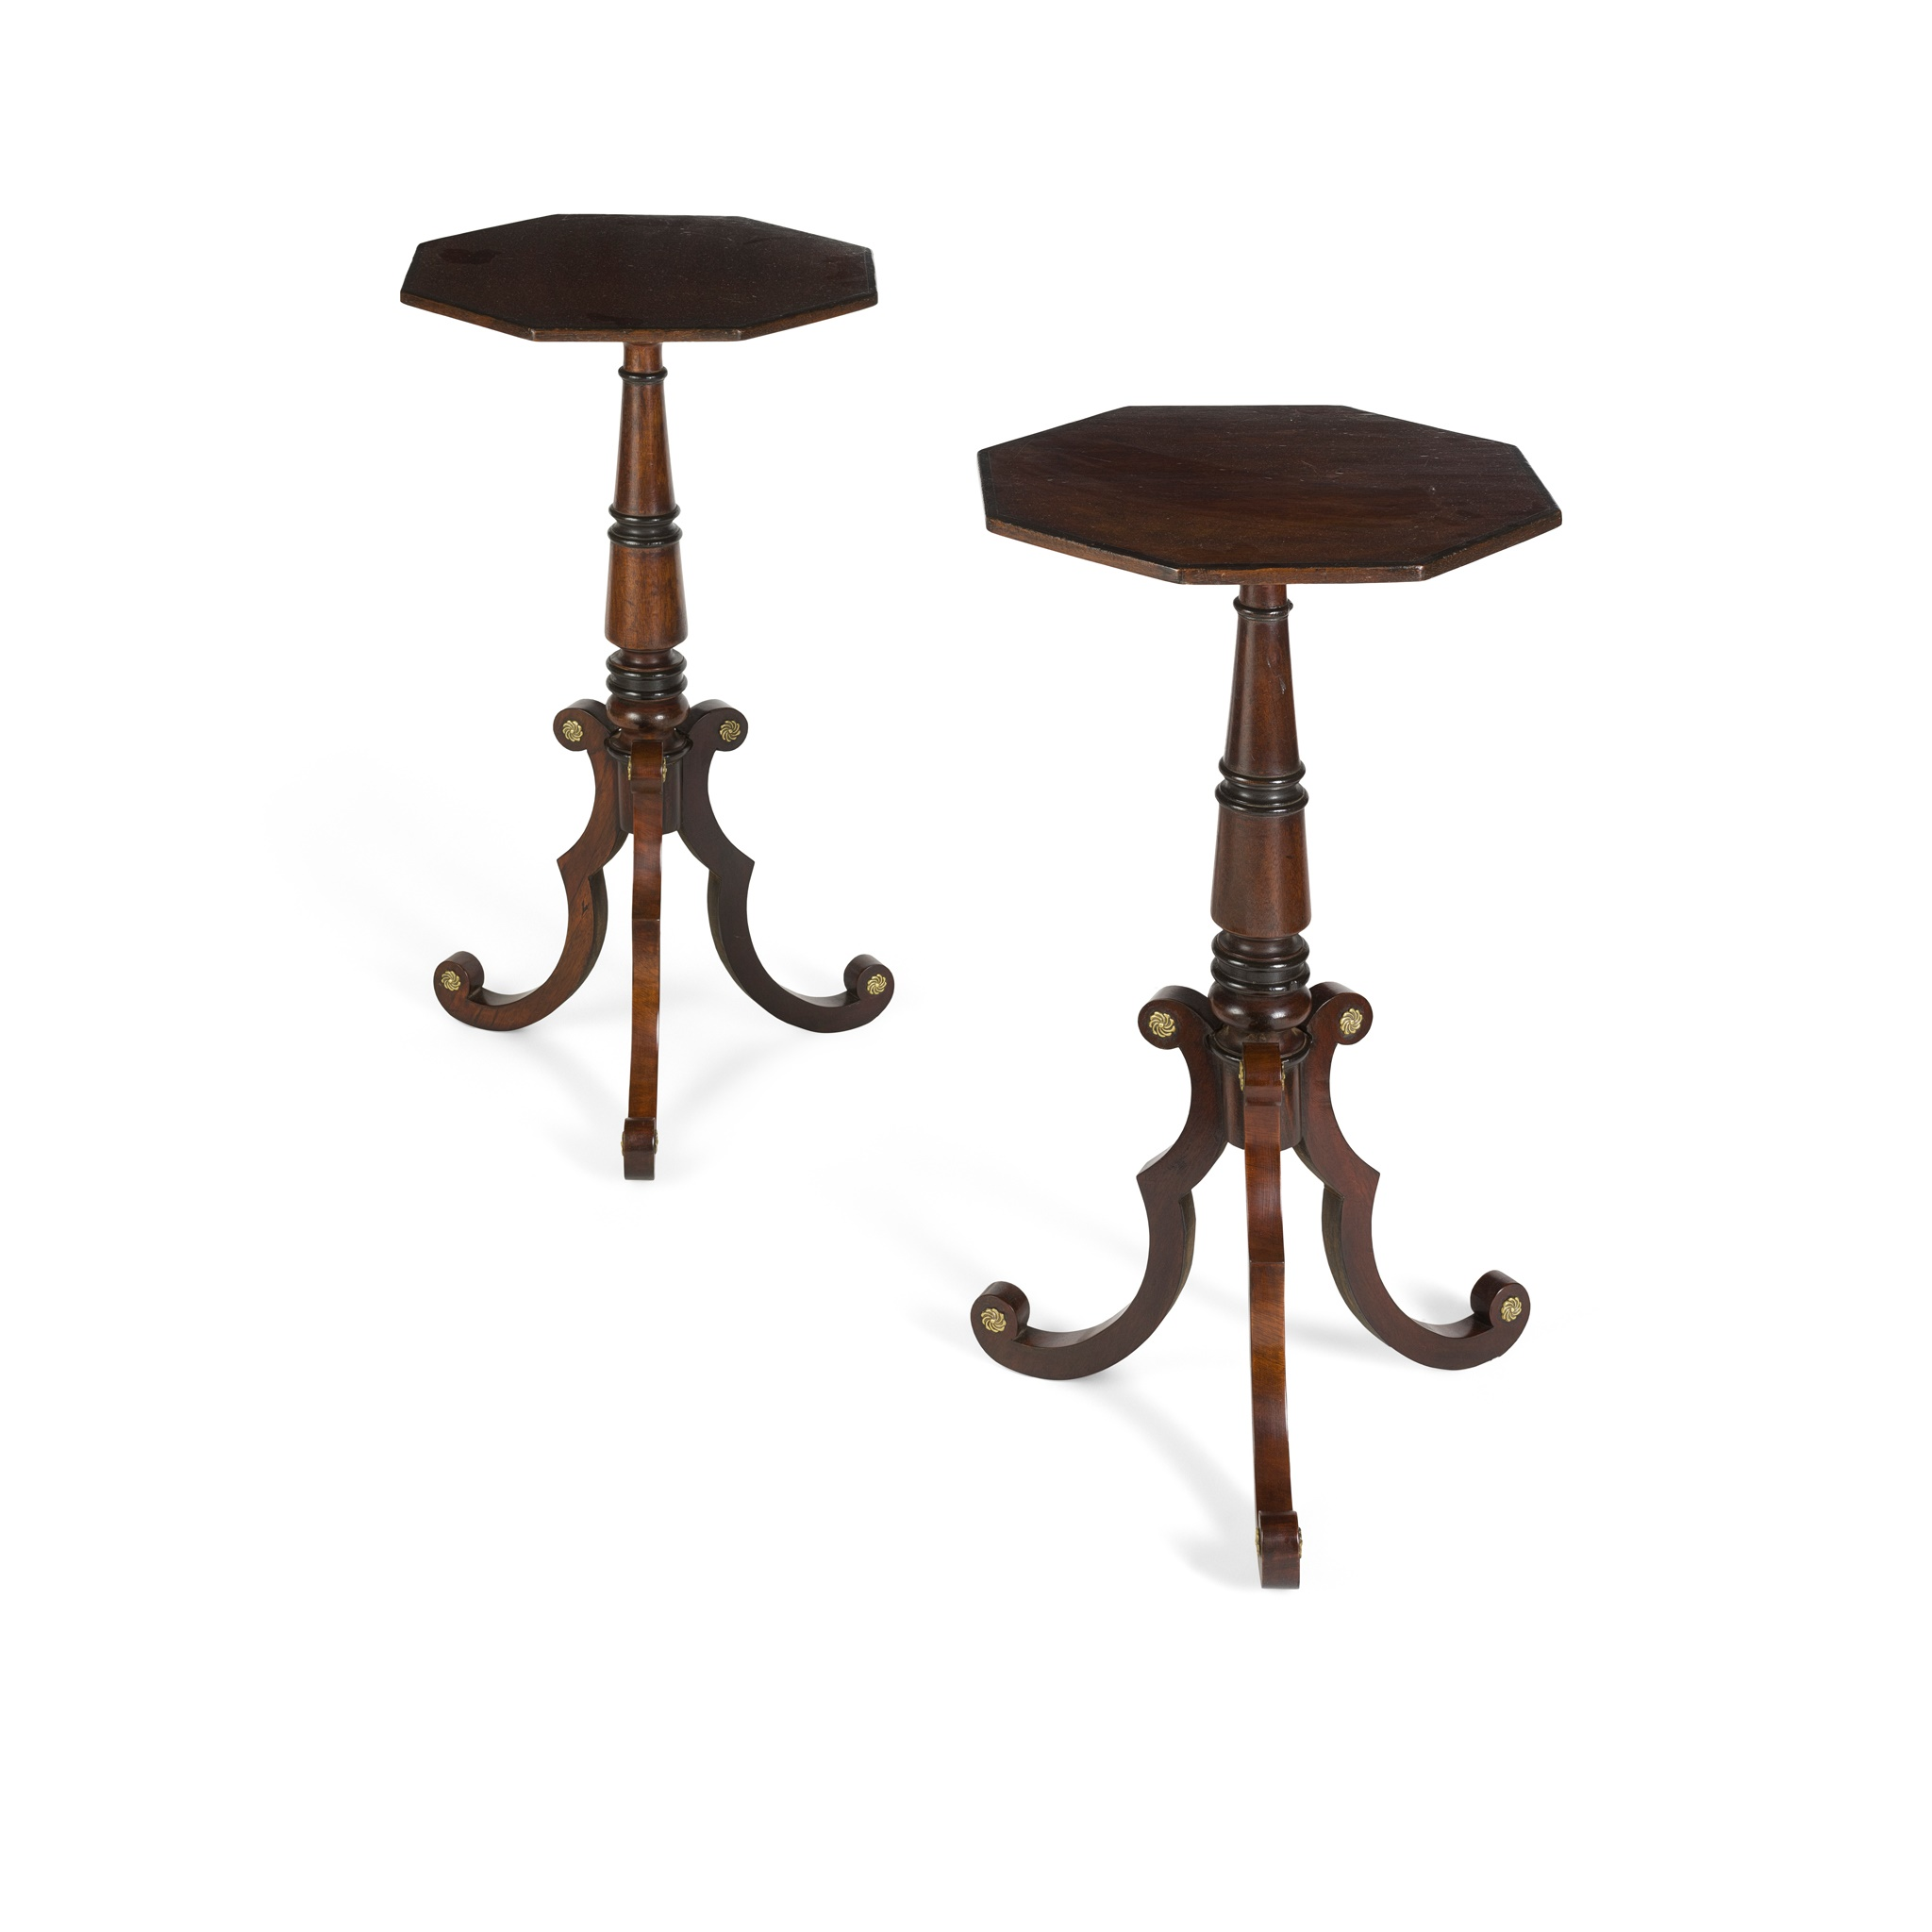 PAIR OF REGENCY MAHOGANY AND EBONISED LAMP TABLES EARLY 19TH CENTURY